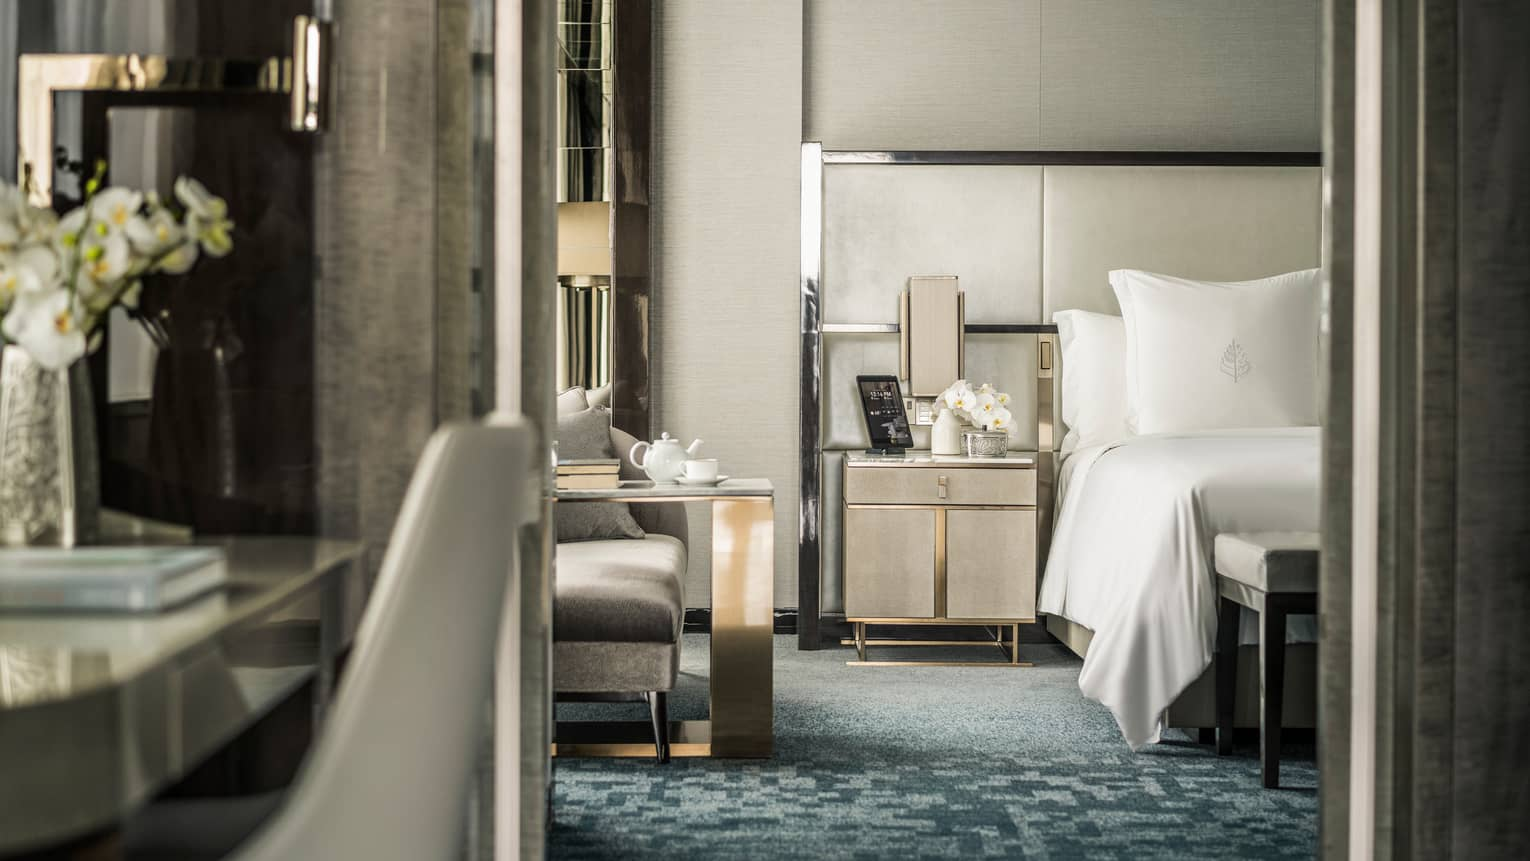 Ambassador Suite desk and view to bedroom